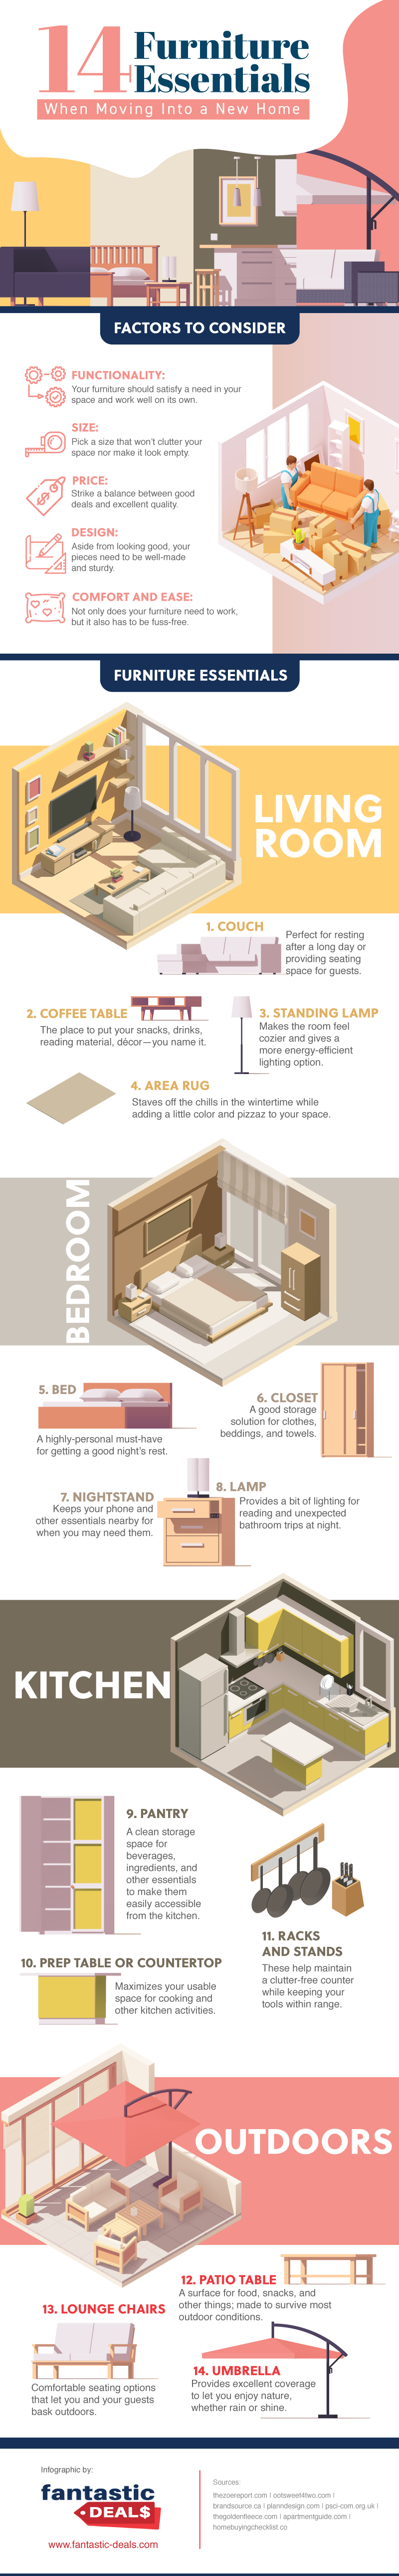 14 Furniture Essentials When Moving Into a New Home #infographic